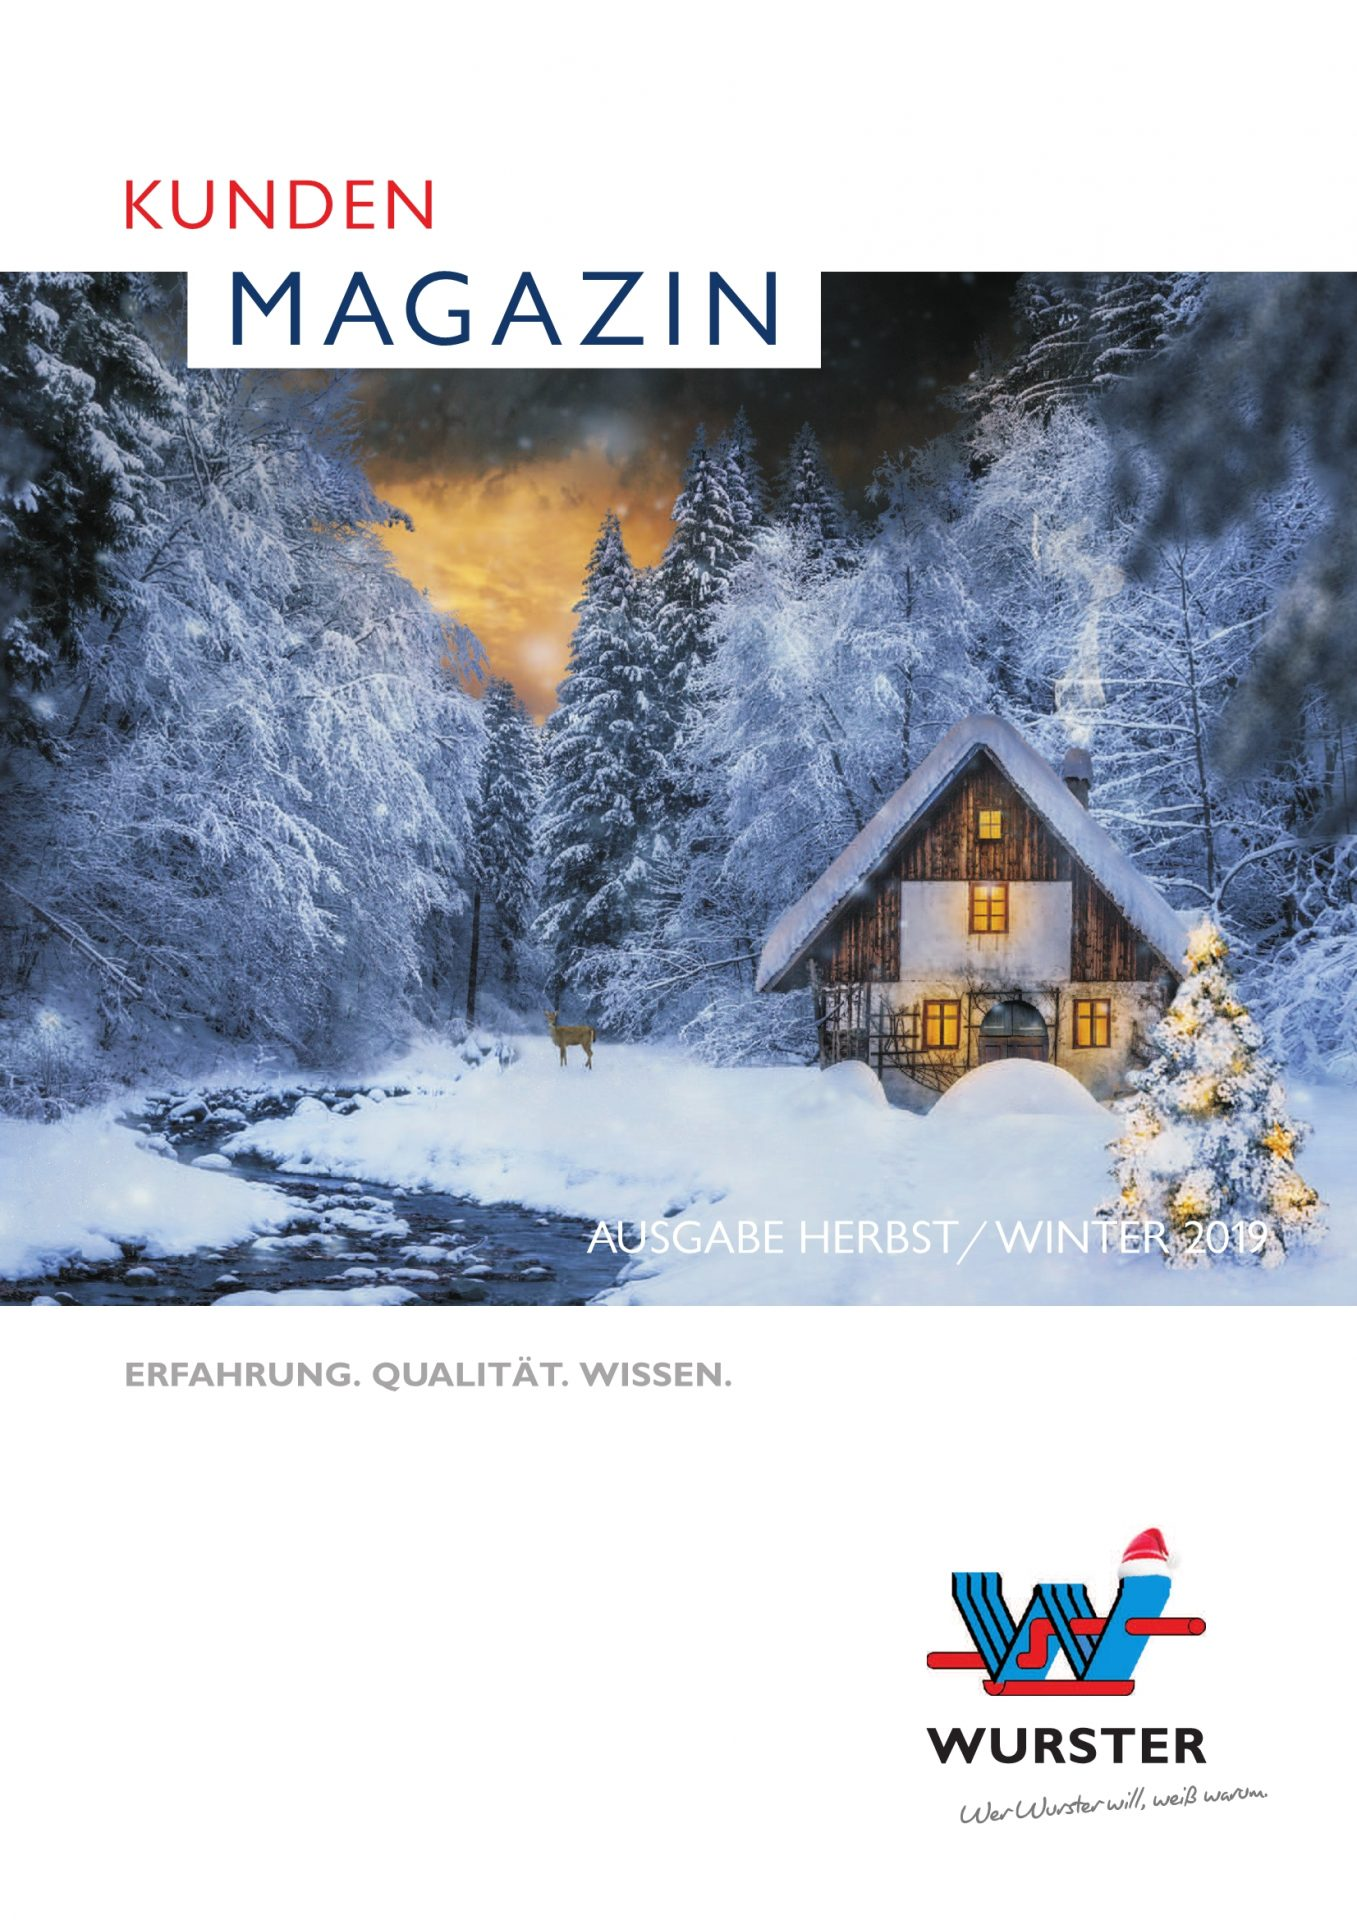 Kundenmagazin_Winter2019-page1-1